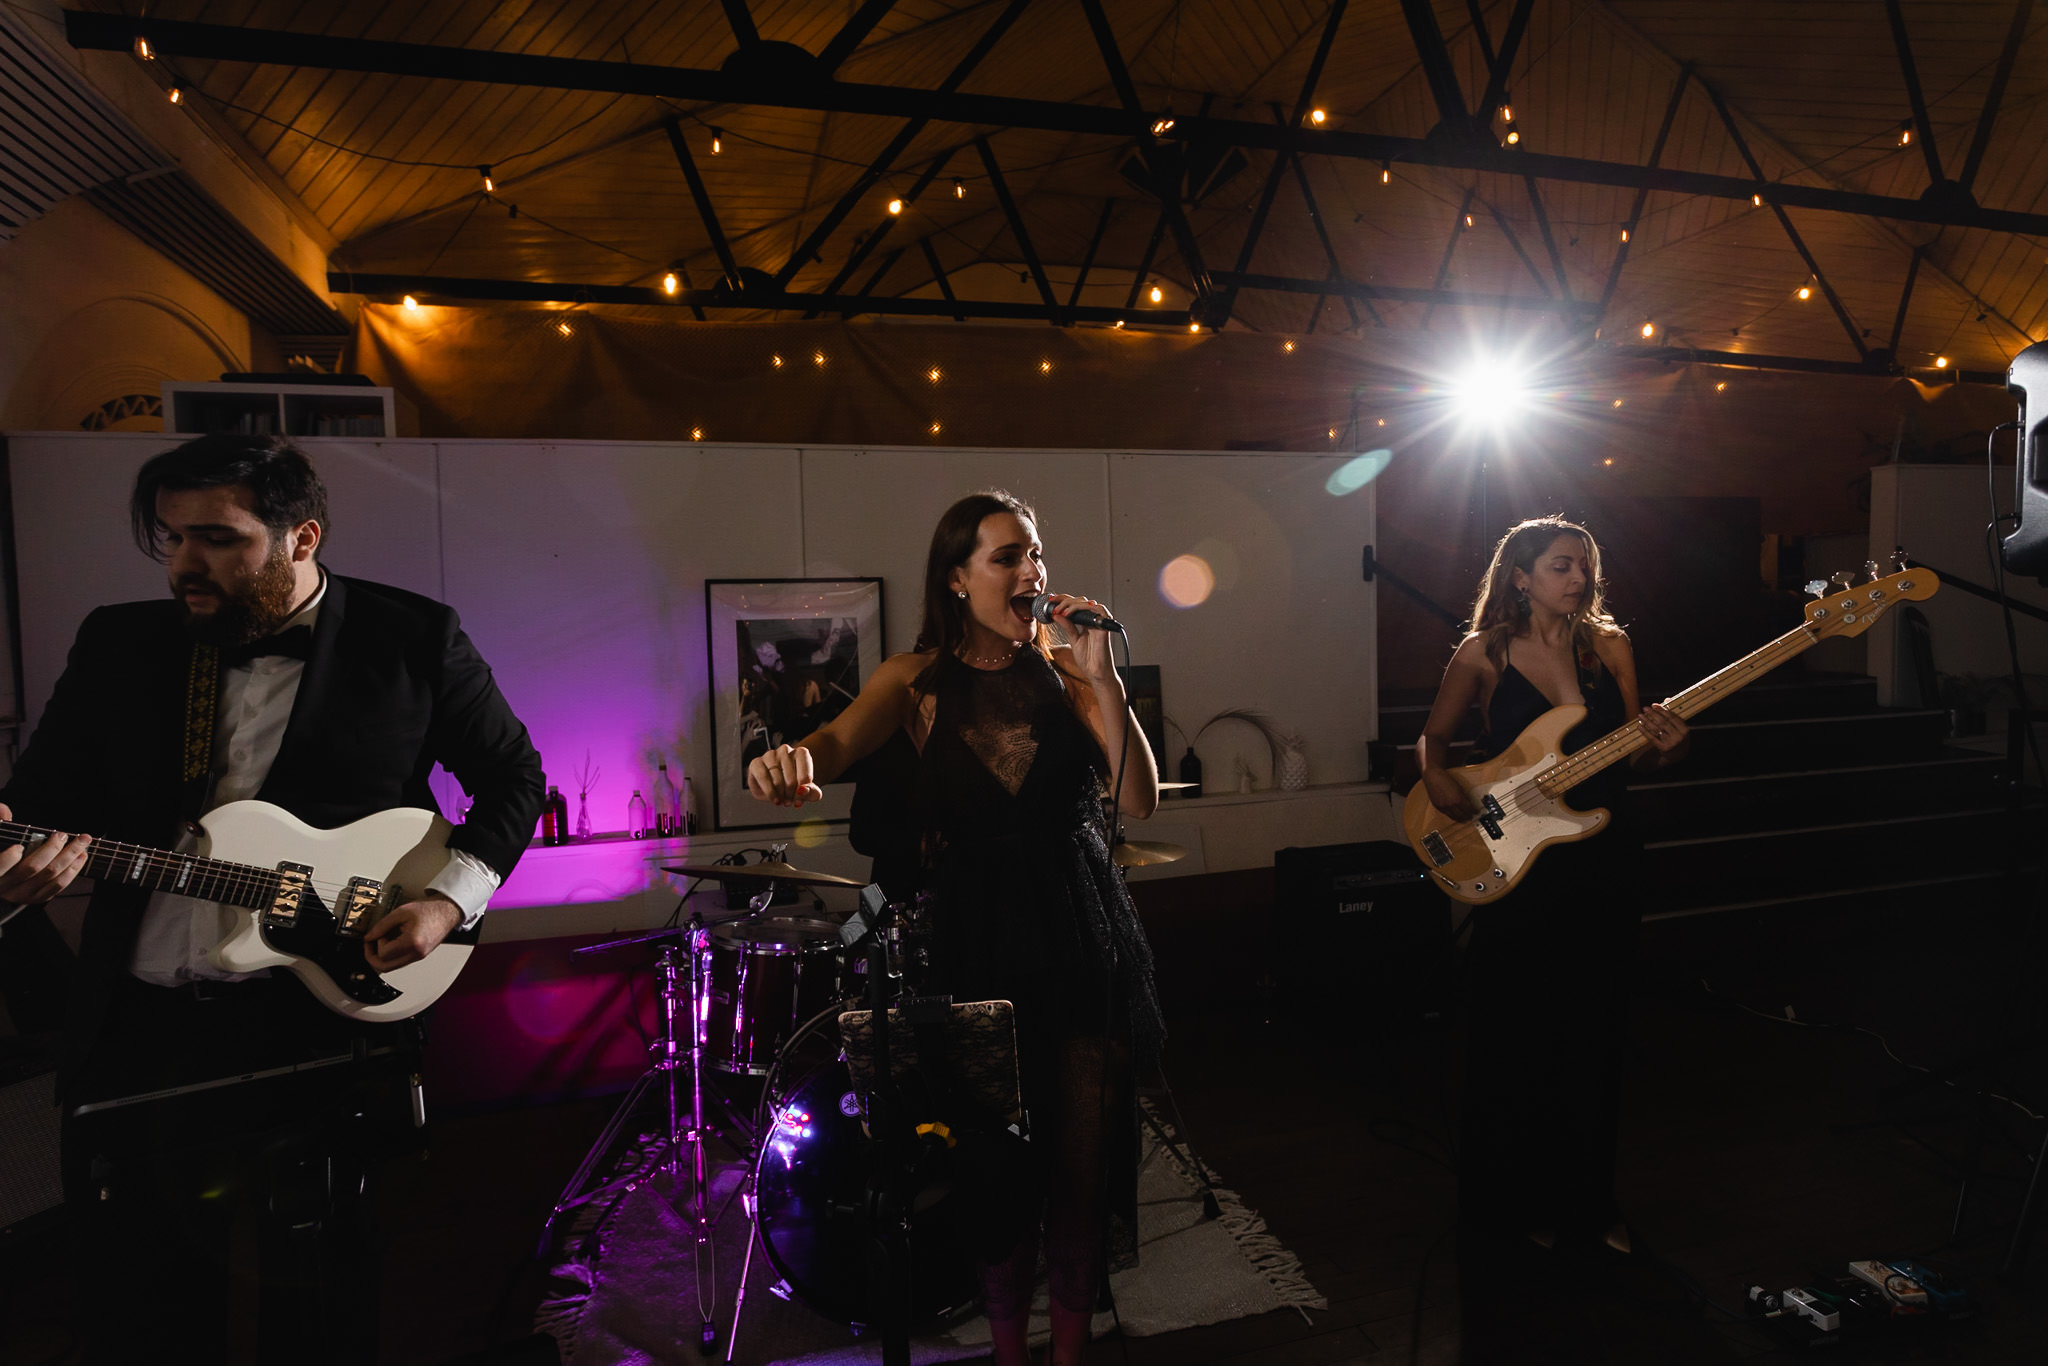 Eclipse Band from Perth playing at wedding reception at Maker and Co in Bunbury